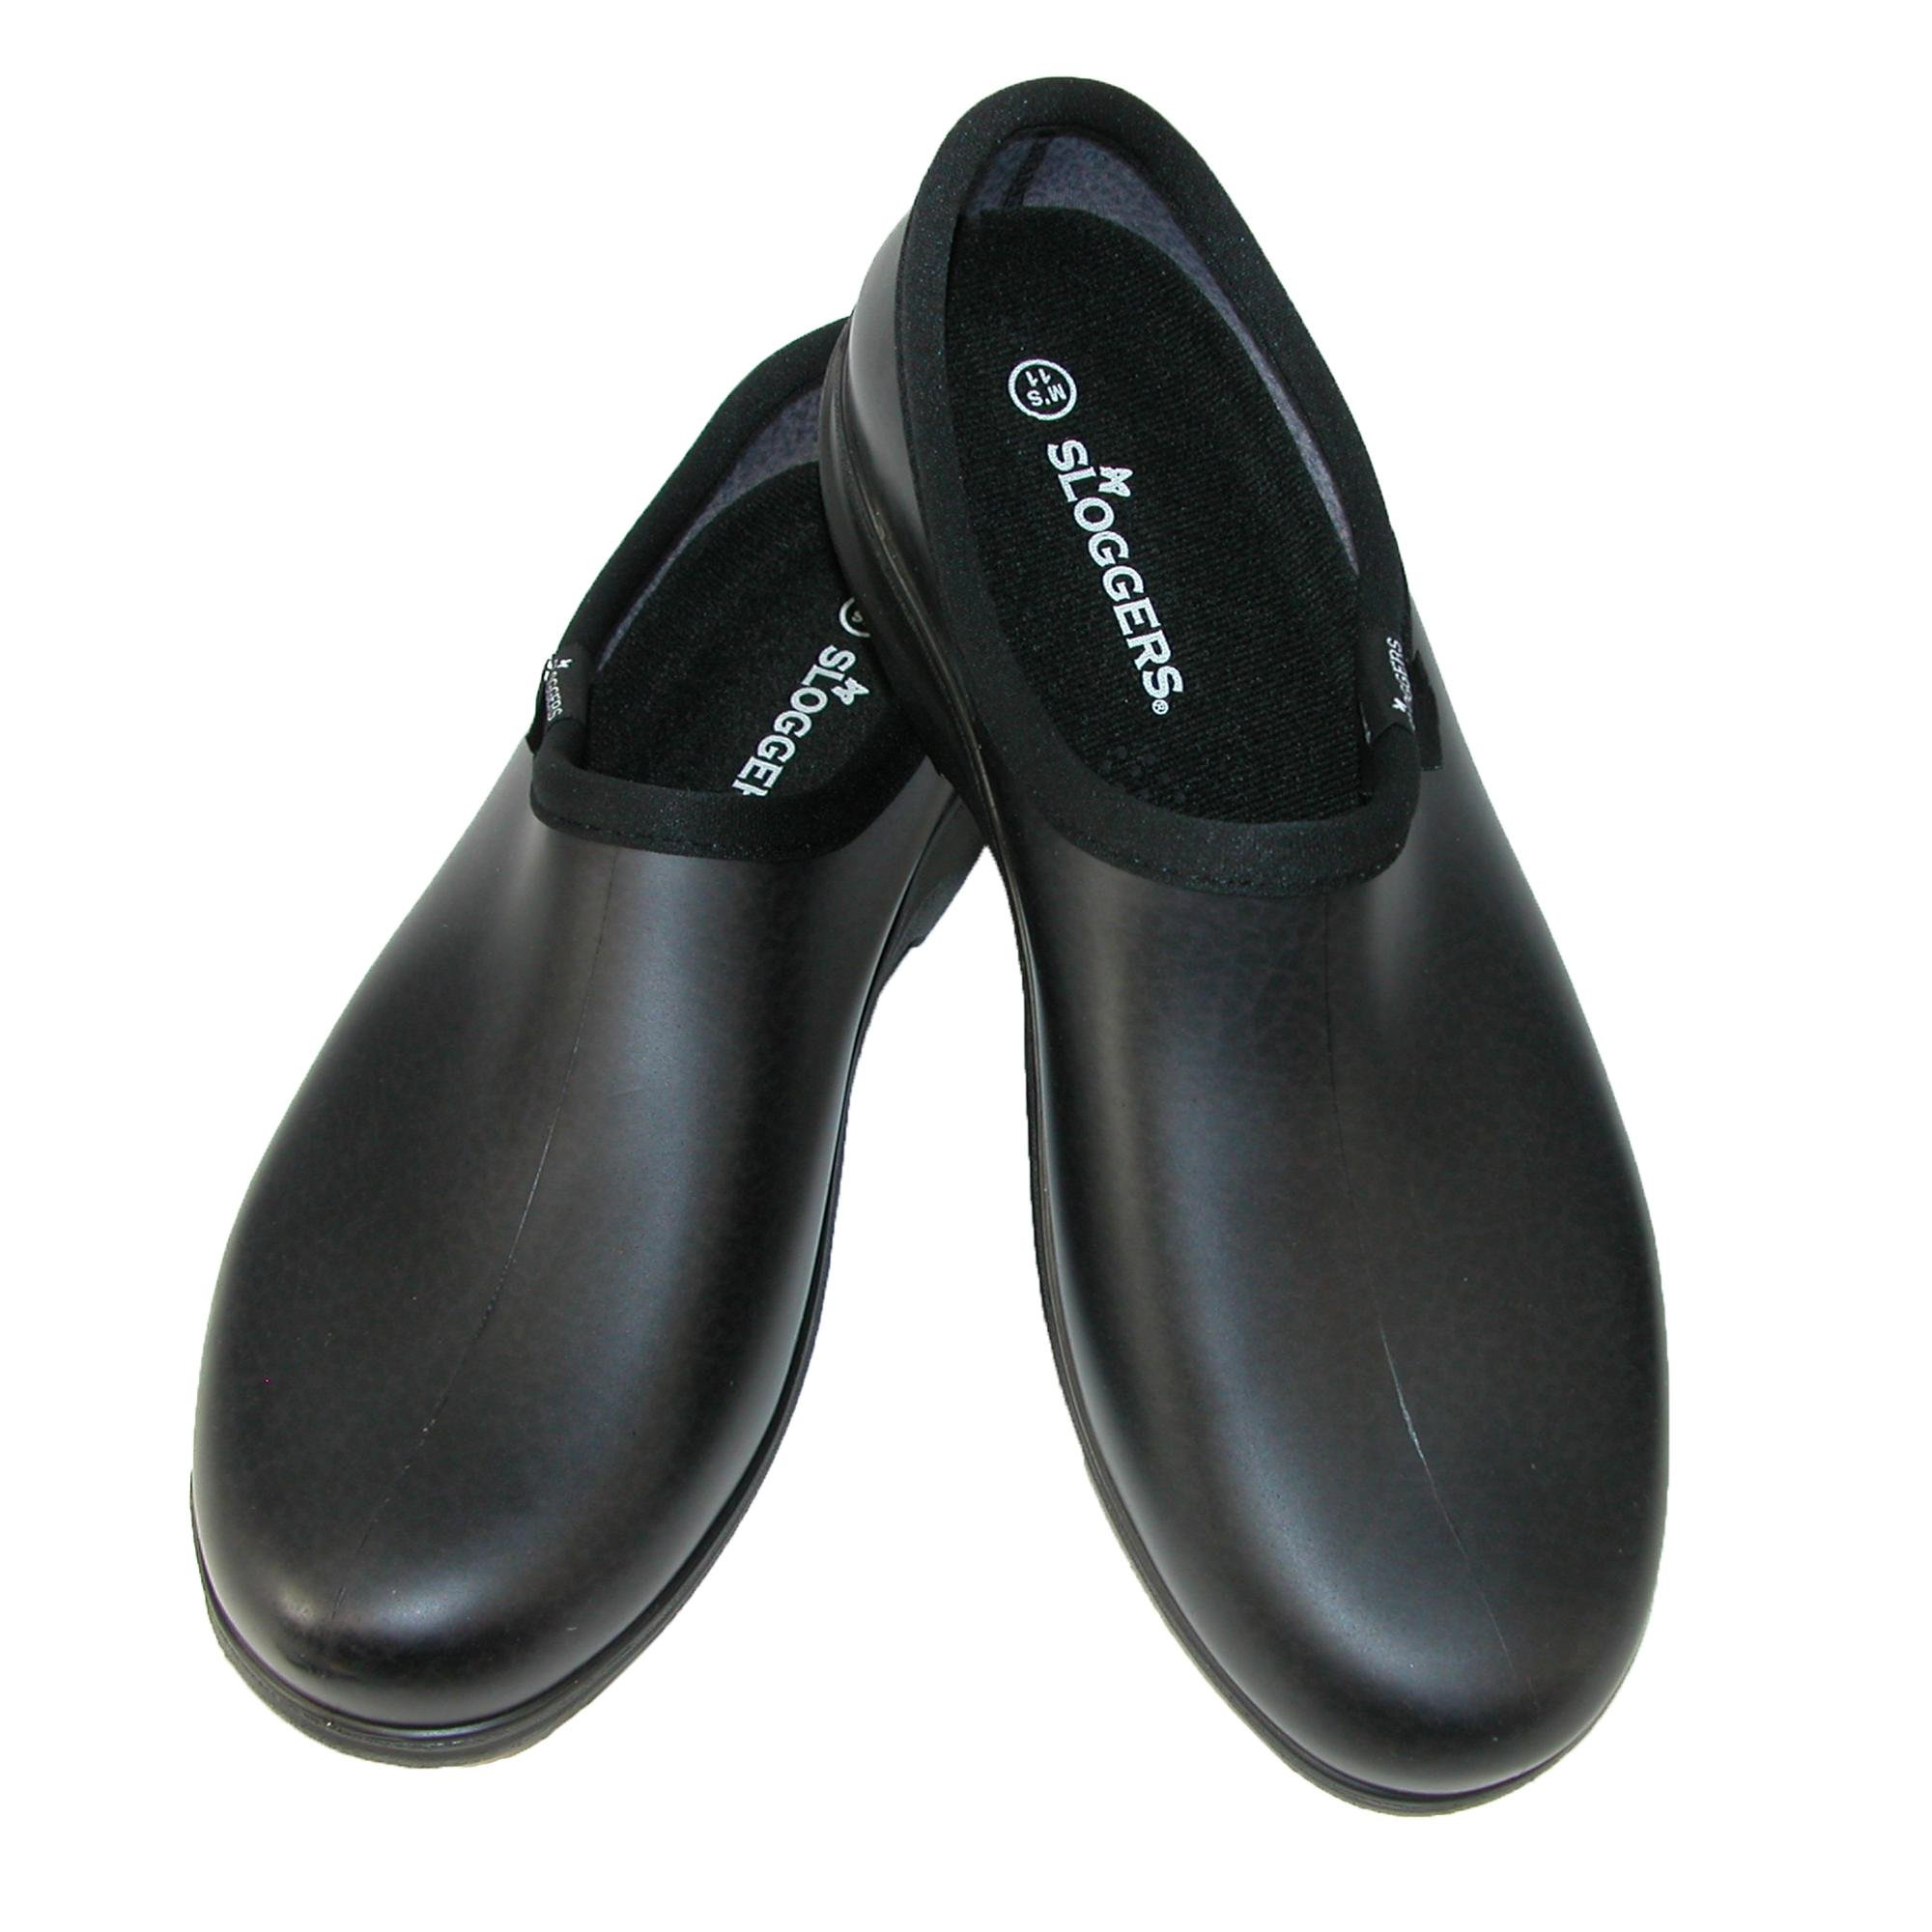 Footwear By Cherokee Men's Sloggers Clog Black